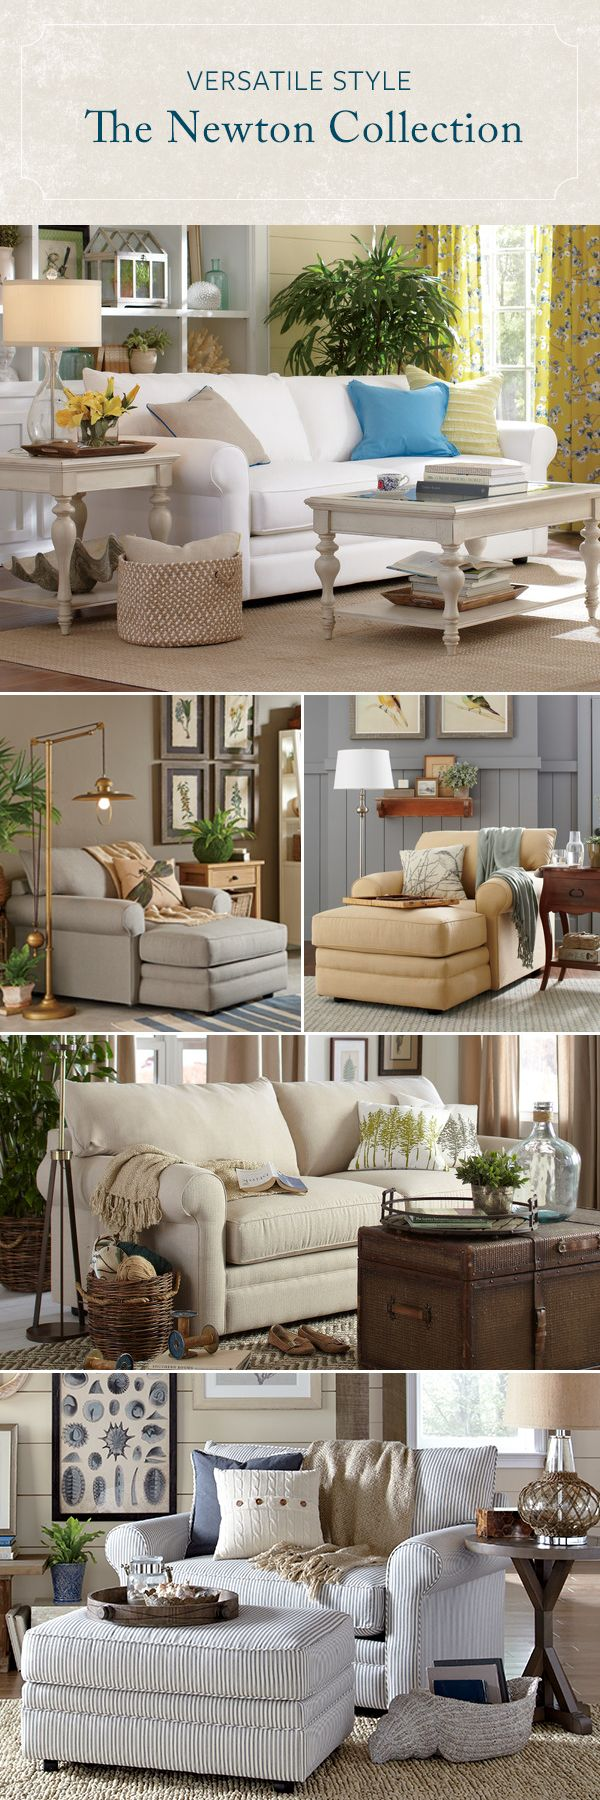 With rolled arms, loose back pillows, and welted trim, the Newton Upholstery Collection defines clean and simple design. Each piece is available in more than 30 fabric options, so you can easily customize this classic look to fit your space. Shop the collection today and enjoy Free In-Home Delivery on your order.